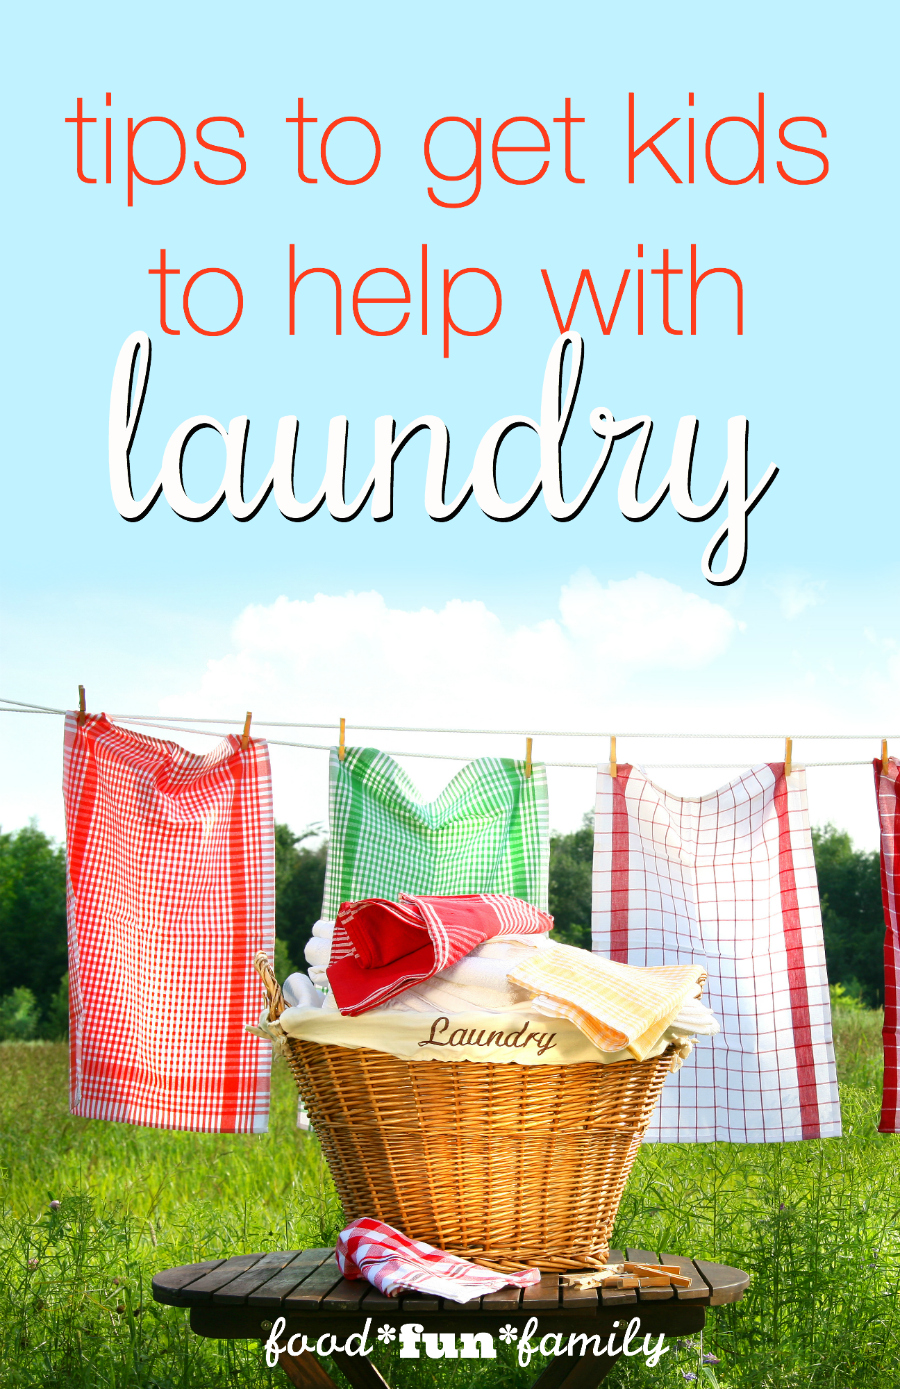 Tips to get kids to help with laundry